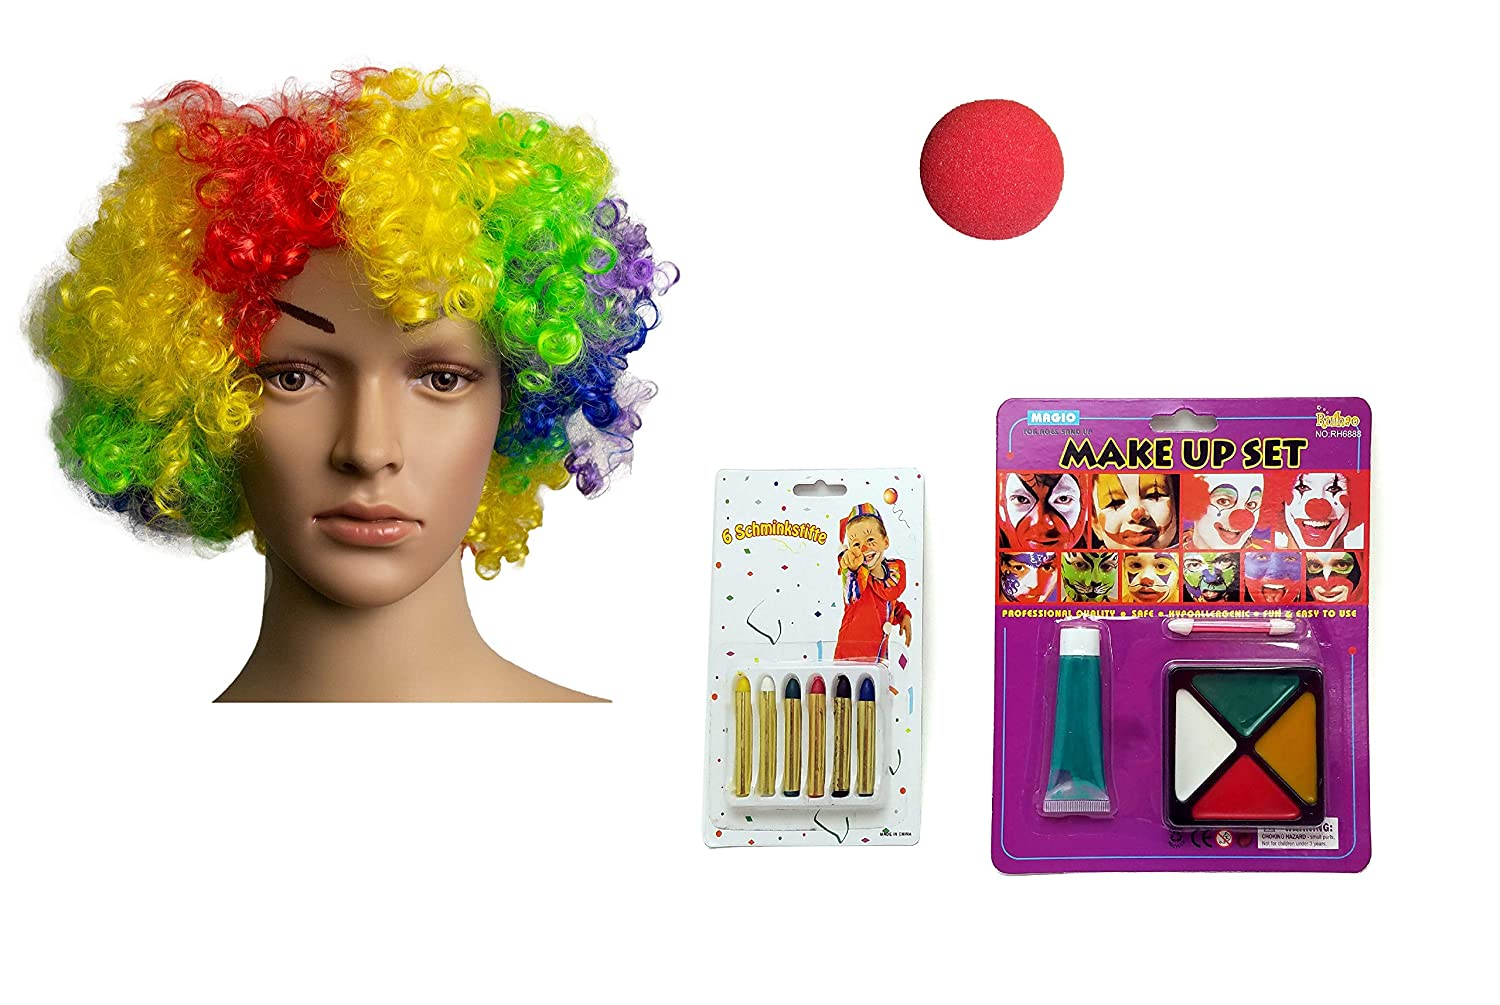 a5baf0b8dc5 Includes everything you need to finalized your clown costume. 1 clown wig